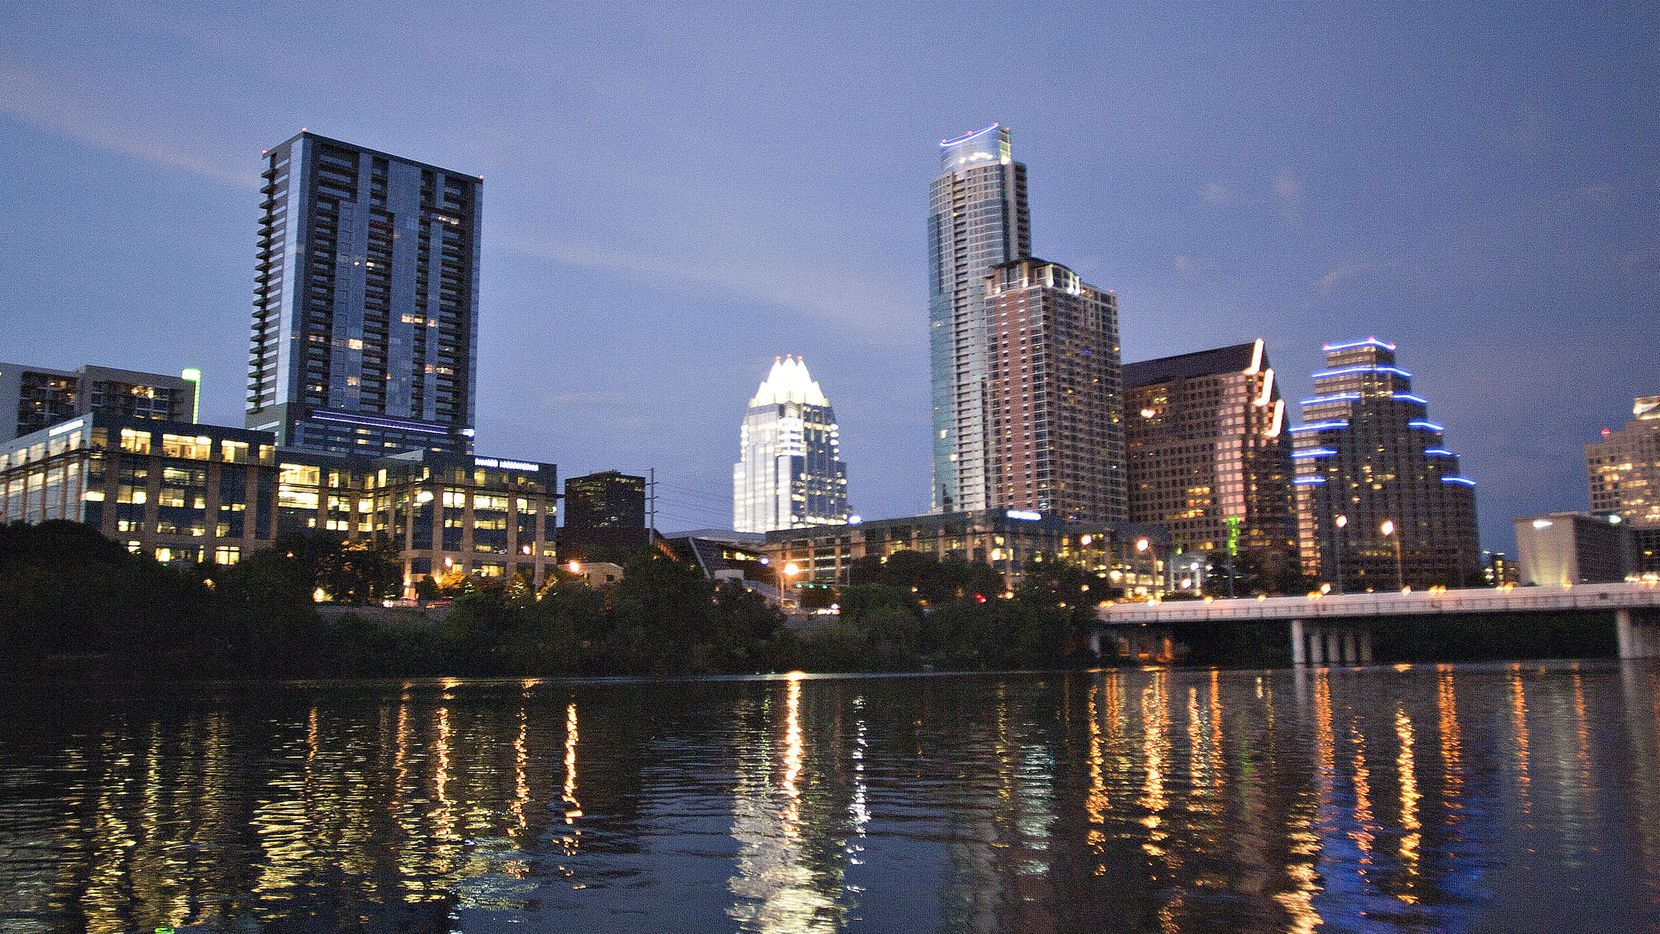 Austin topped the list of metropolitan areas with the most startup activity, but other Texas cities also fared well on the list.